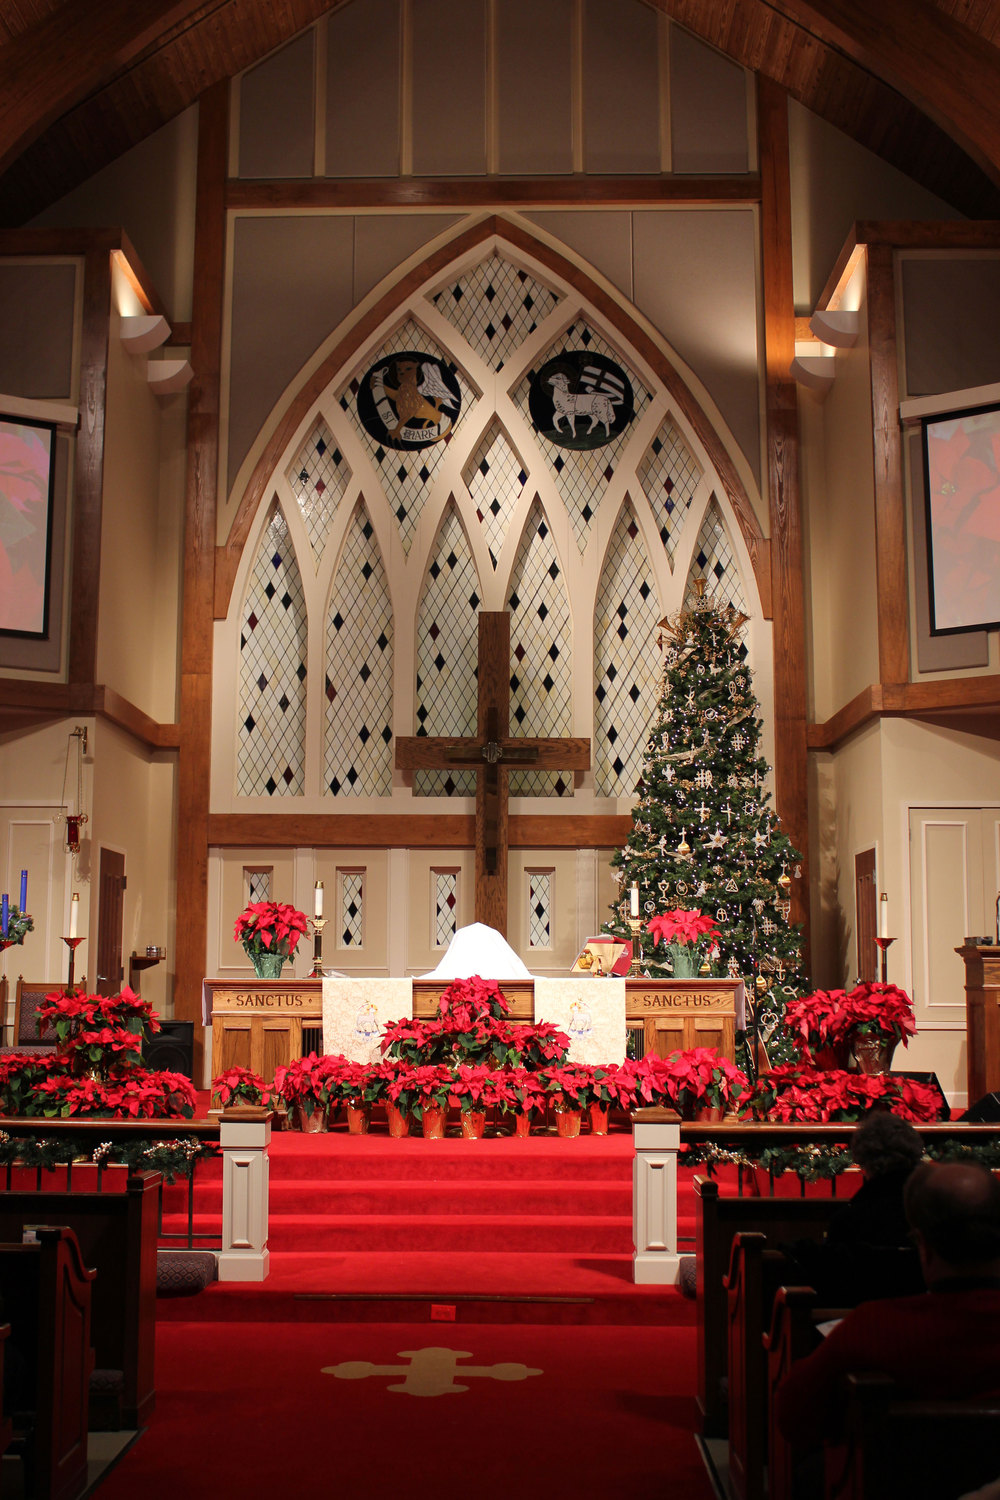 Festive decor in one of the most gorgeous churches in Huntsville.